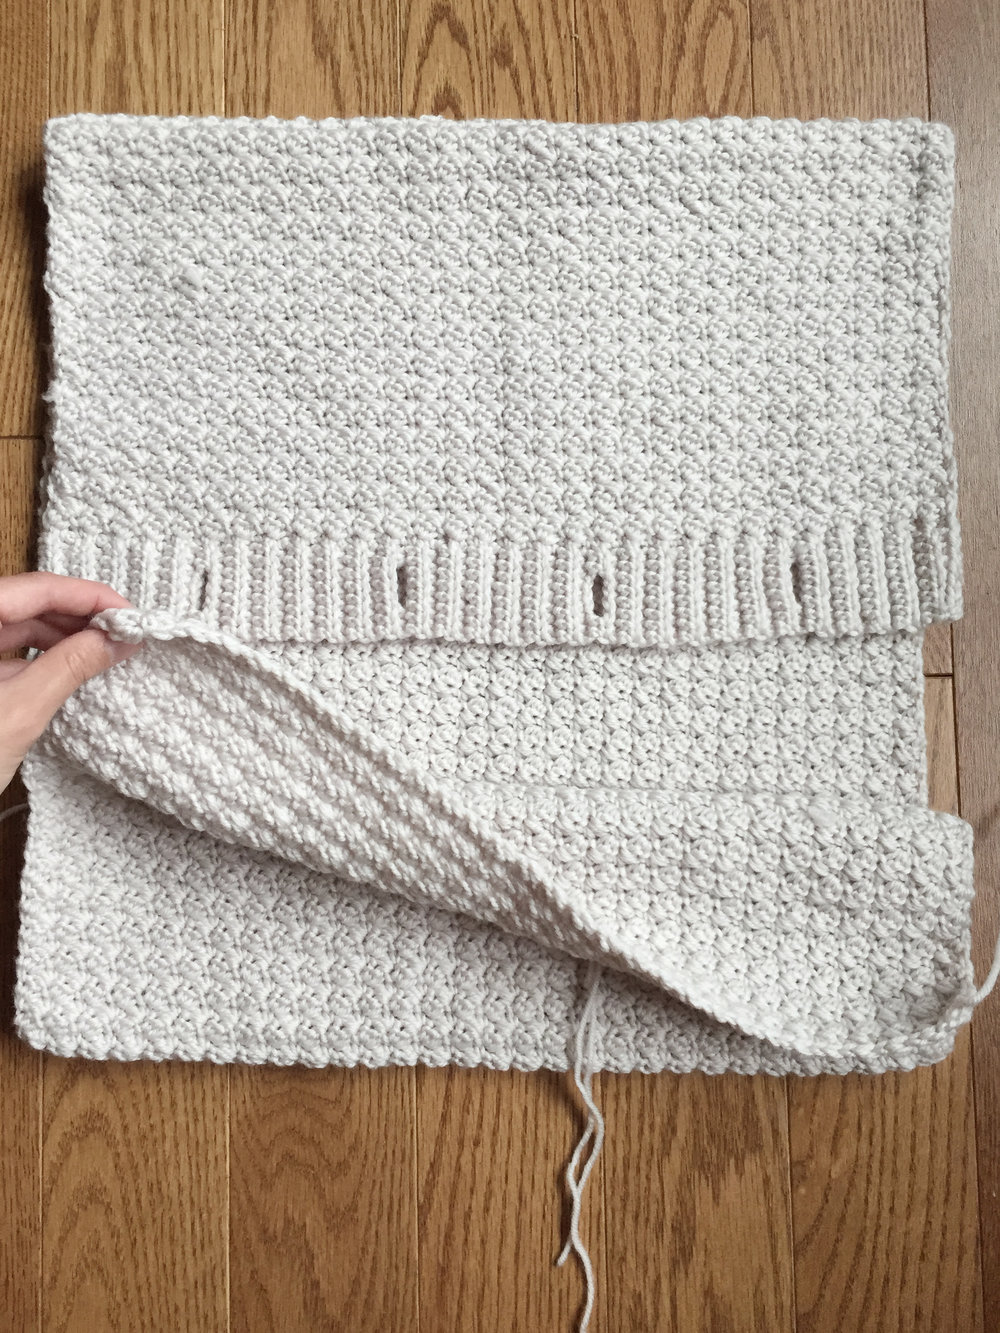 crochet pillow how to - megmade with love